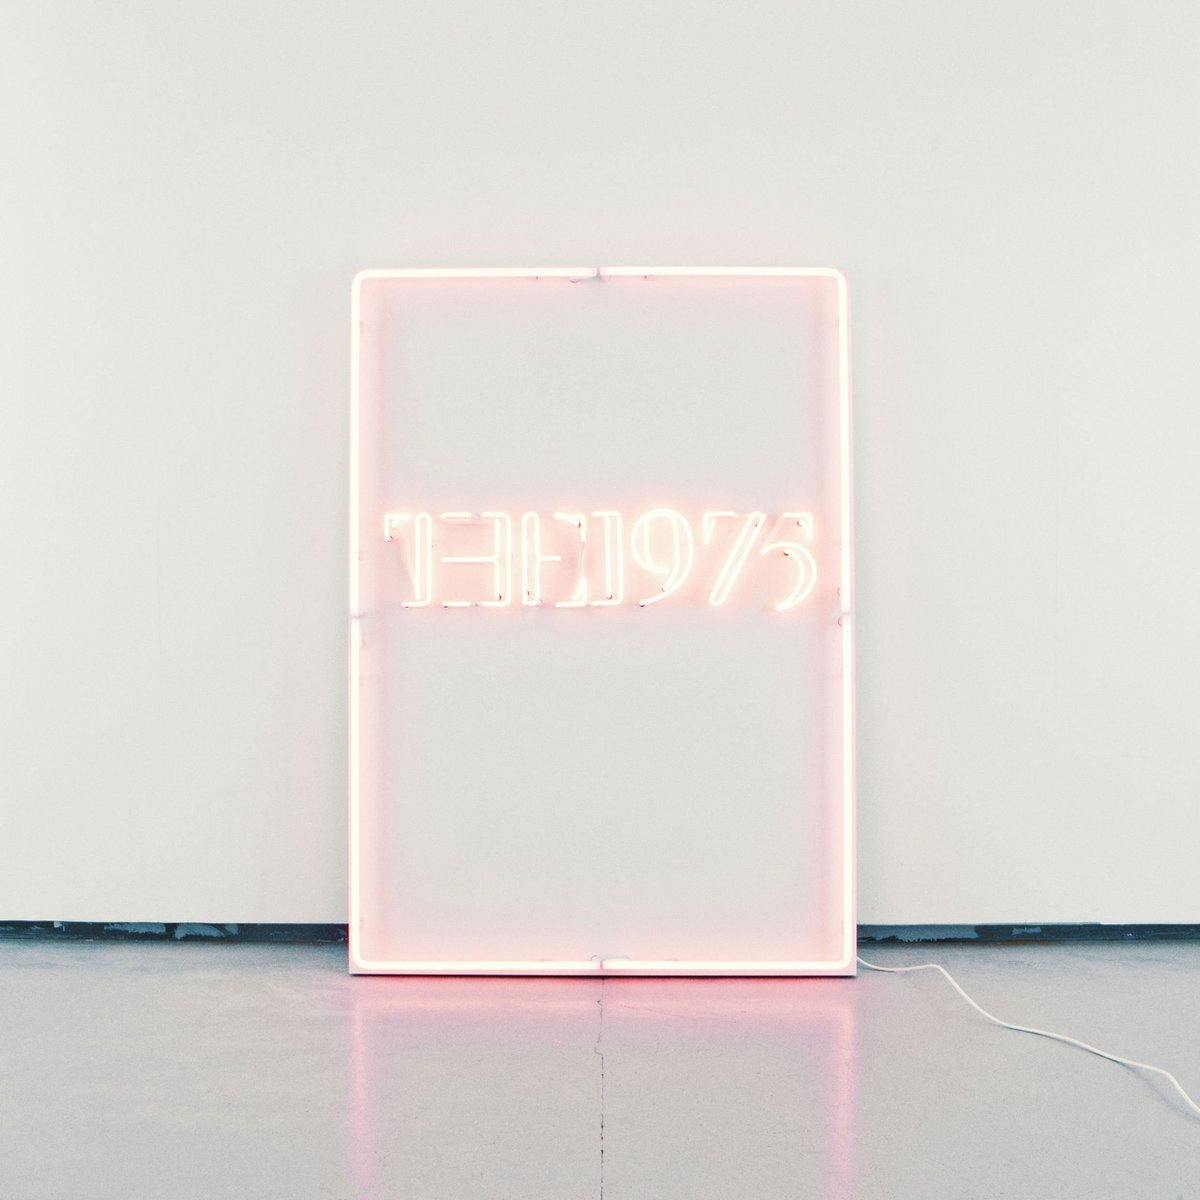 Wonderfully garish: our editor raves about the new album from The 1975. Score 9/10 https://t.co/JOzdVUjalc #the1975 https://t.co/QFhhWqXa1r